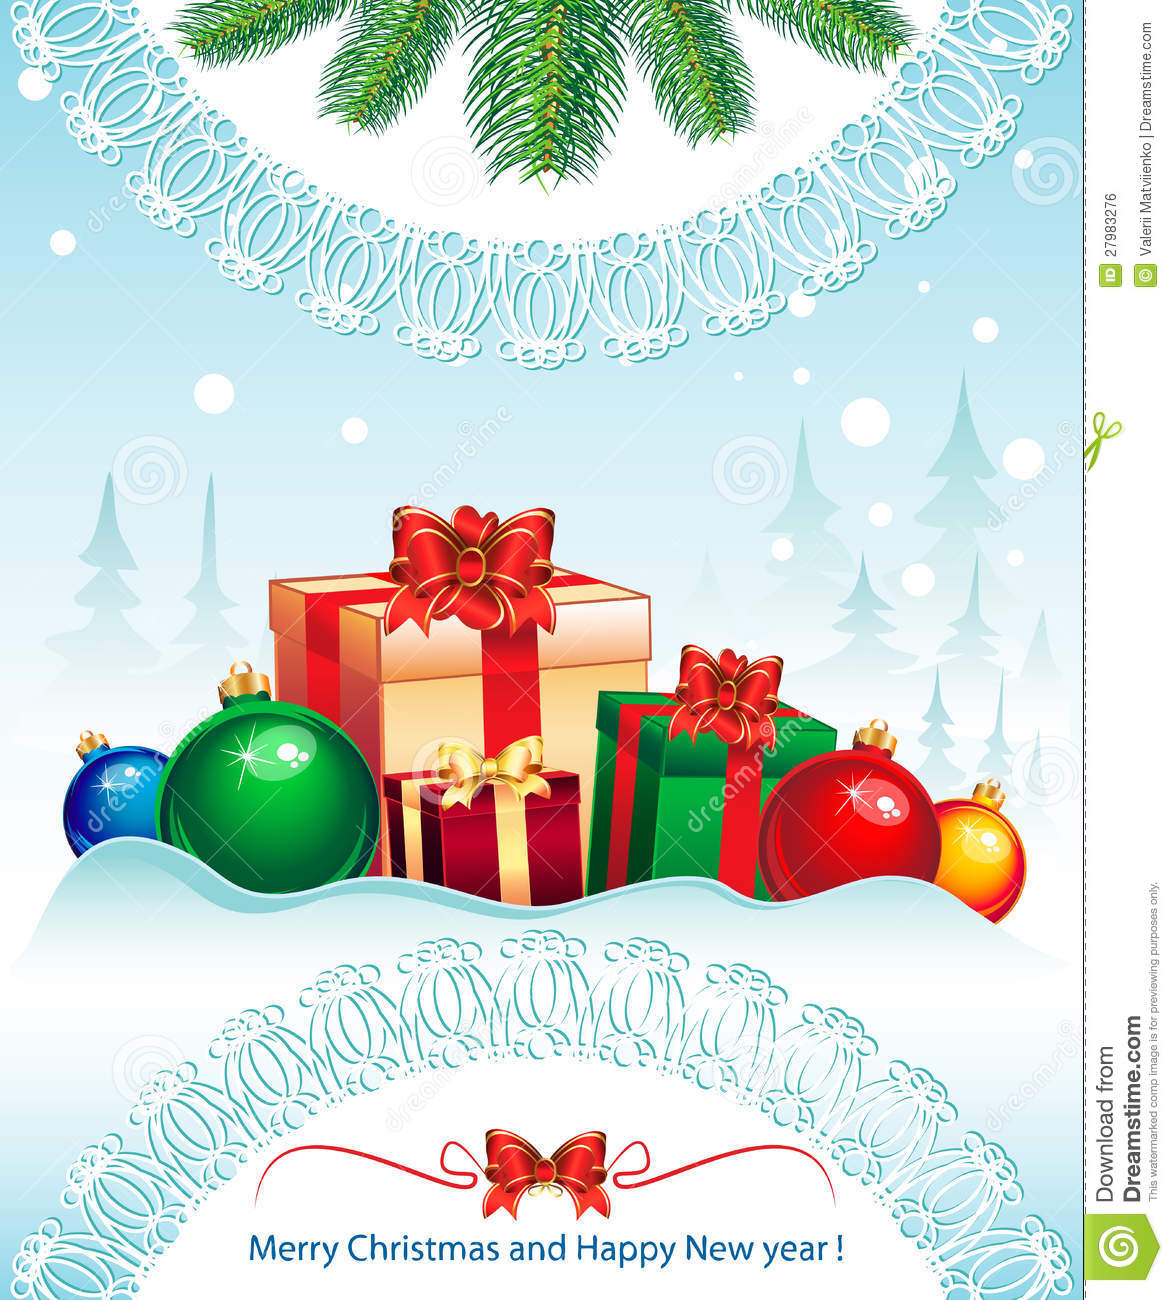 merry christmas elegant suggestive background for